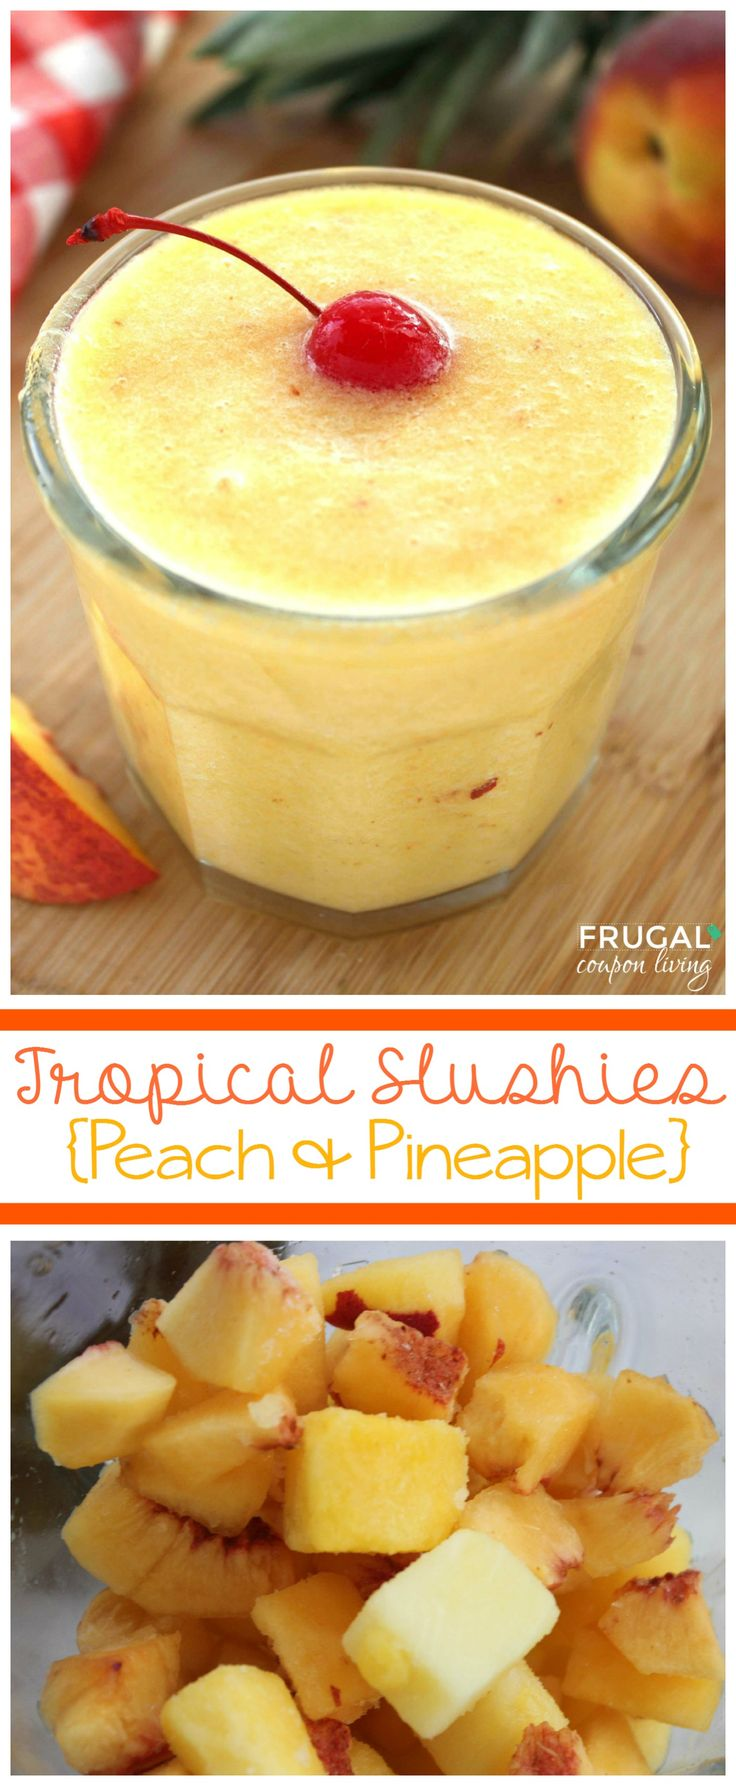 Tropical Peach and Pineapple Slushies - only 3 Ingredients! Details on Frugal Coupon Living. Perfect beach drink or summer treat!